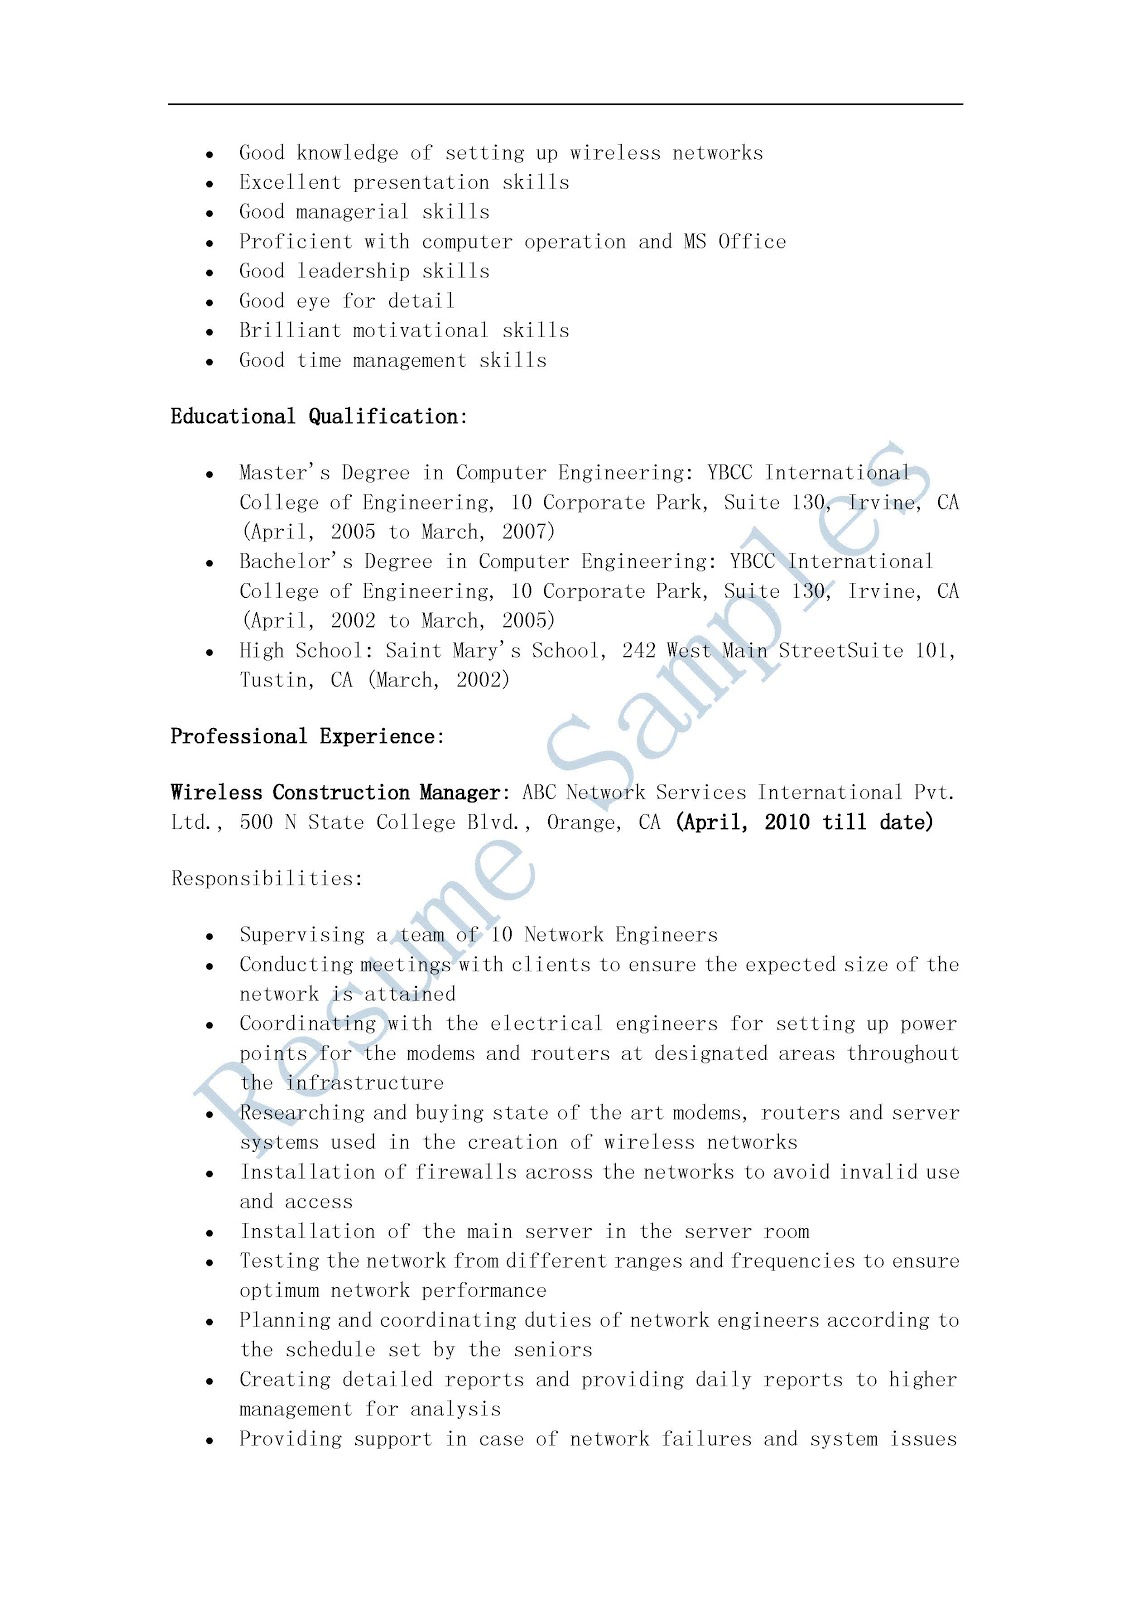 Program Management Resume Examples Resume Examples Construction Resumes  Powerful Resume Examples Construction Concrete Superintendent Template  Worker  Construction Resume Sample